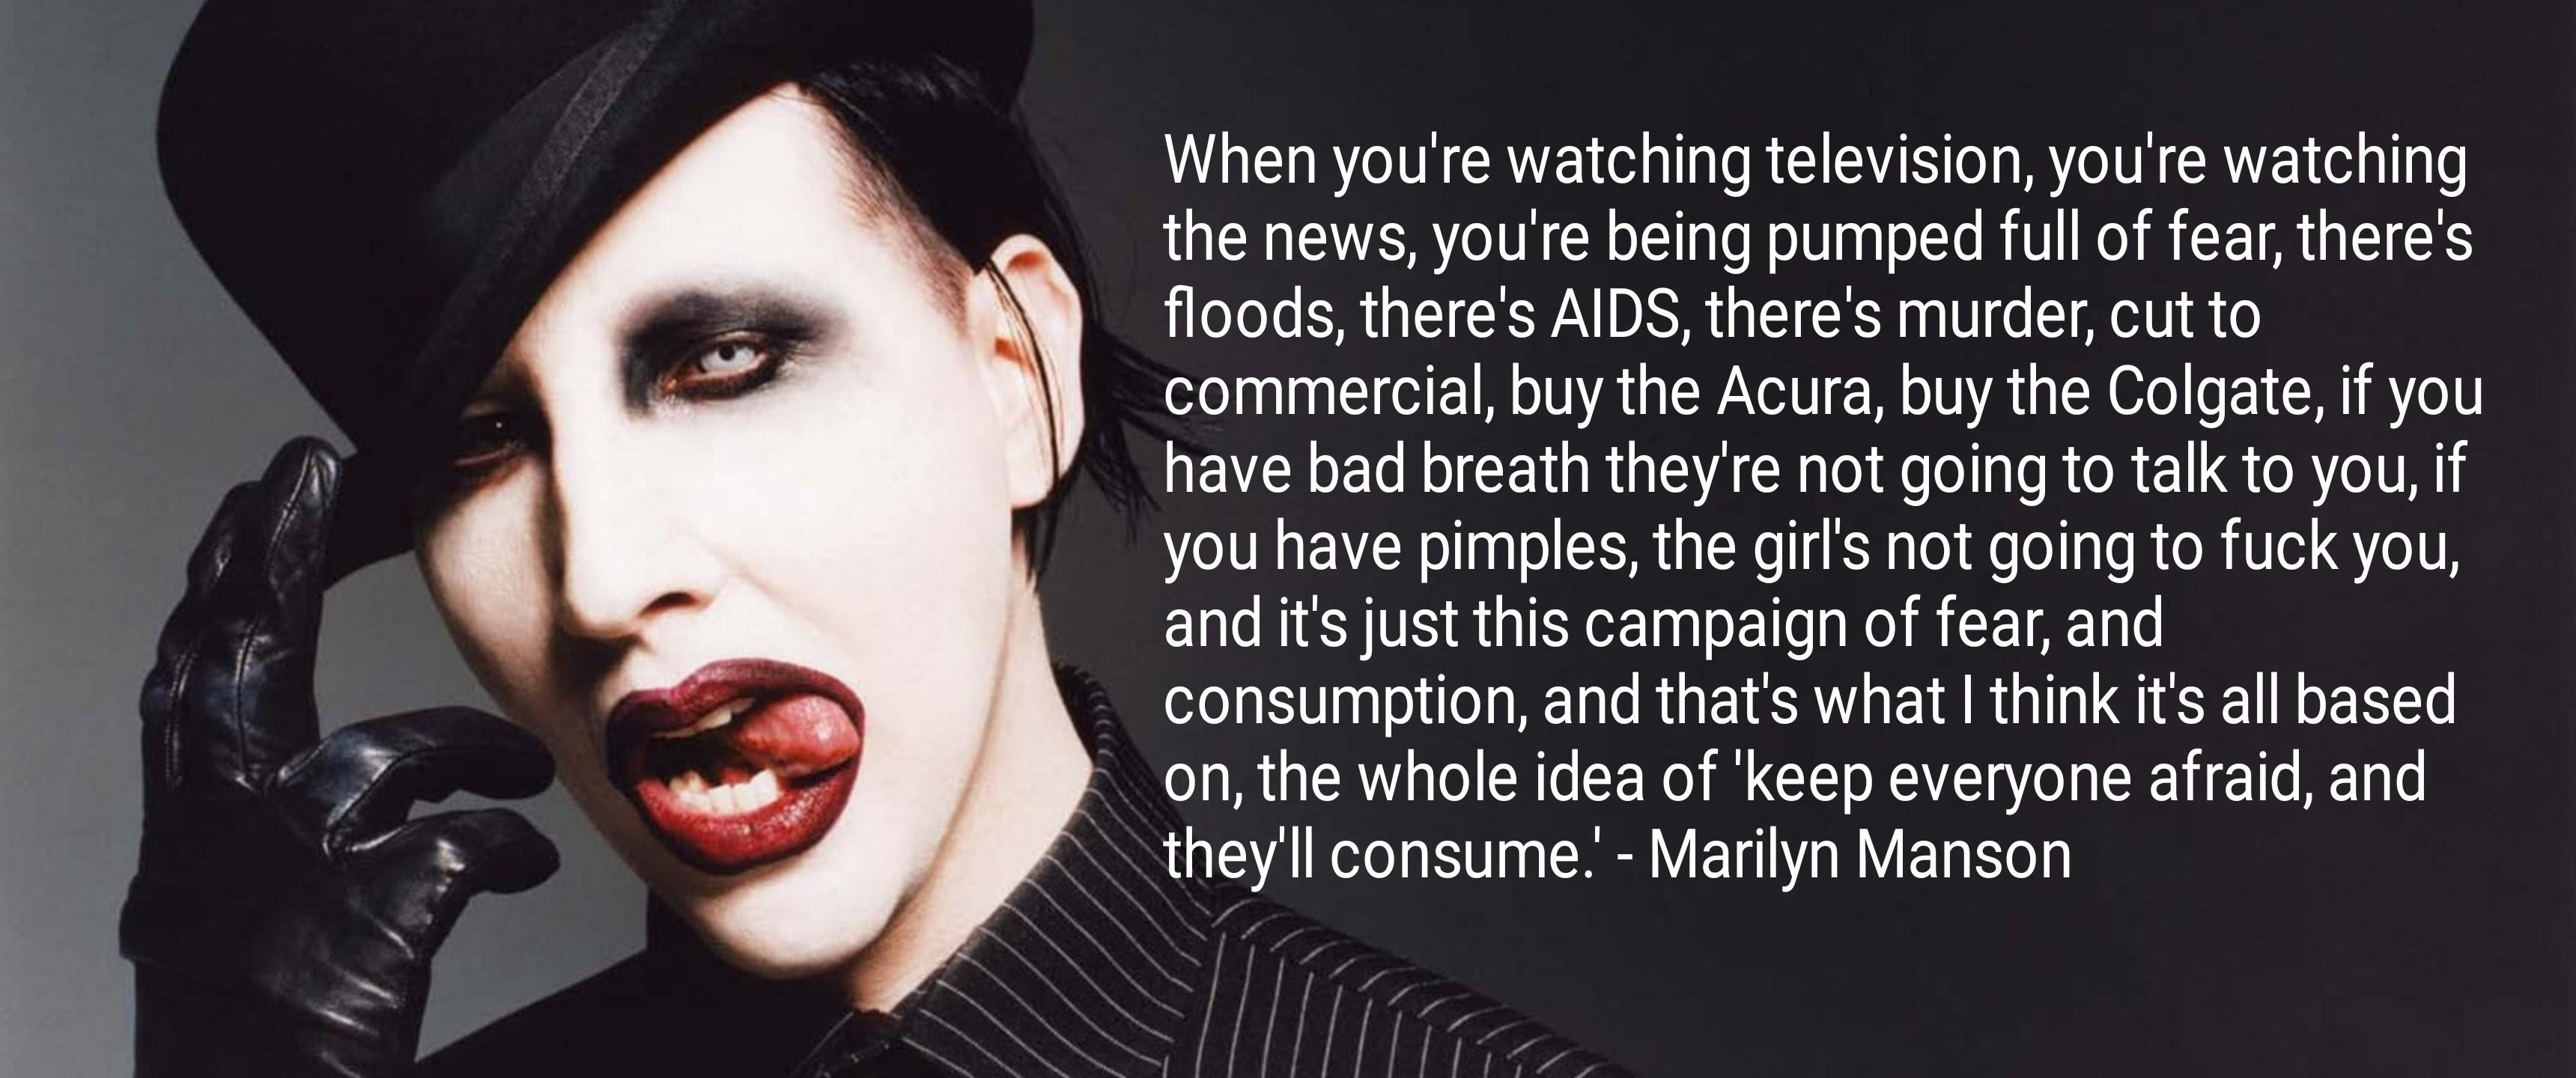 When you're watching television, you're watching the news, you're being pumped full of fear, there's floods, there's AIDS, there's murder, cut to commercial, buy the Acura, buy the Colgate, if you have bad breath they're not going to talk to you… Marilyn Manson [3440 x 1440]